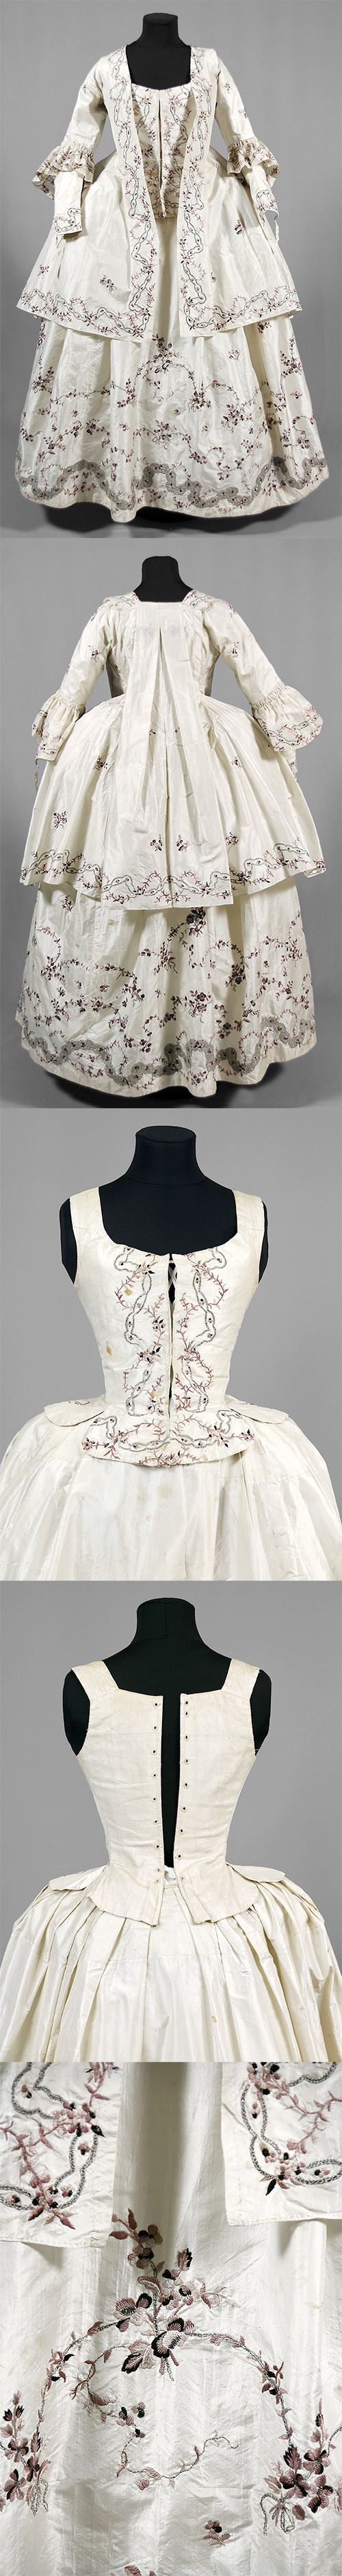 best rococo madness images on pinterest historical clothing